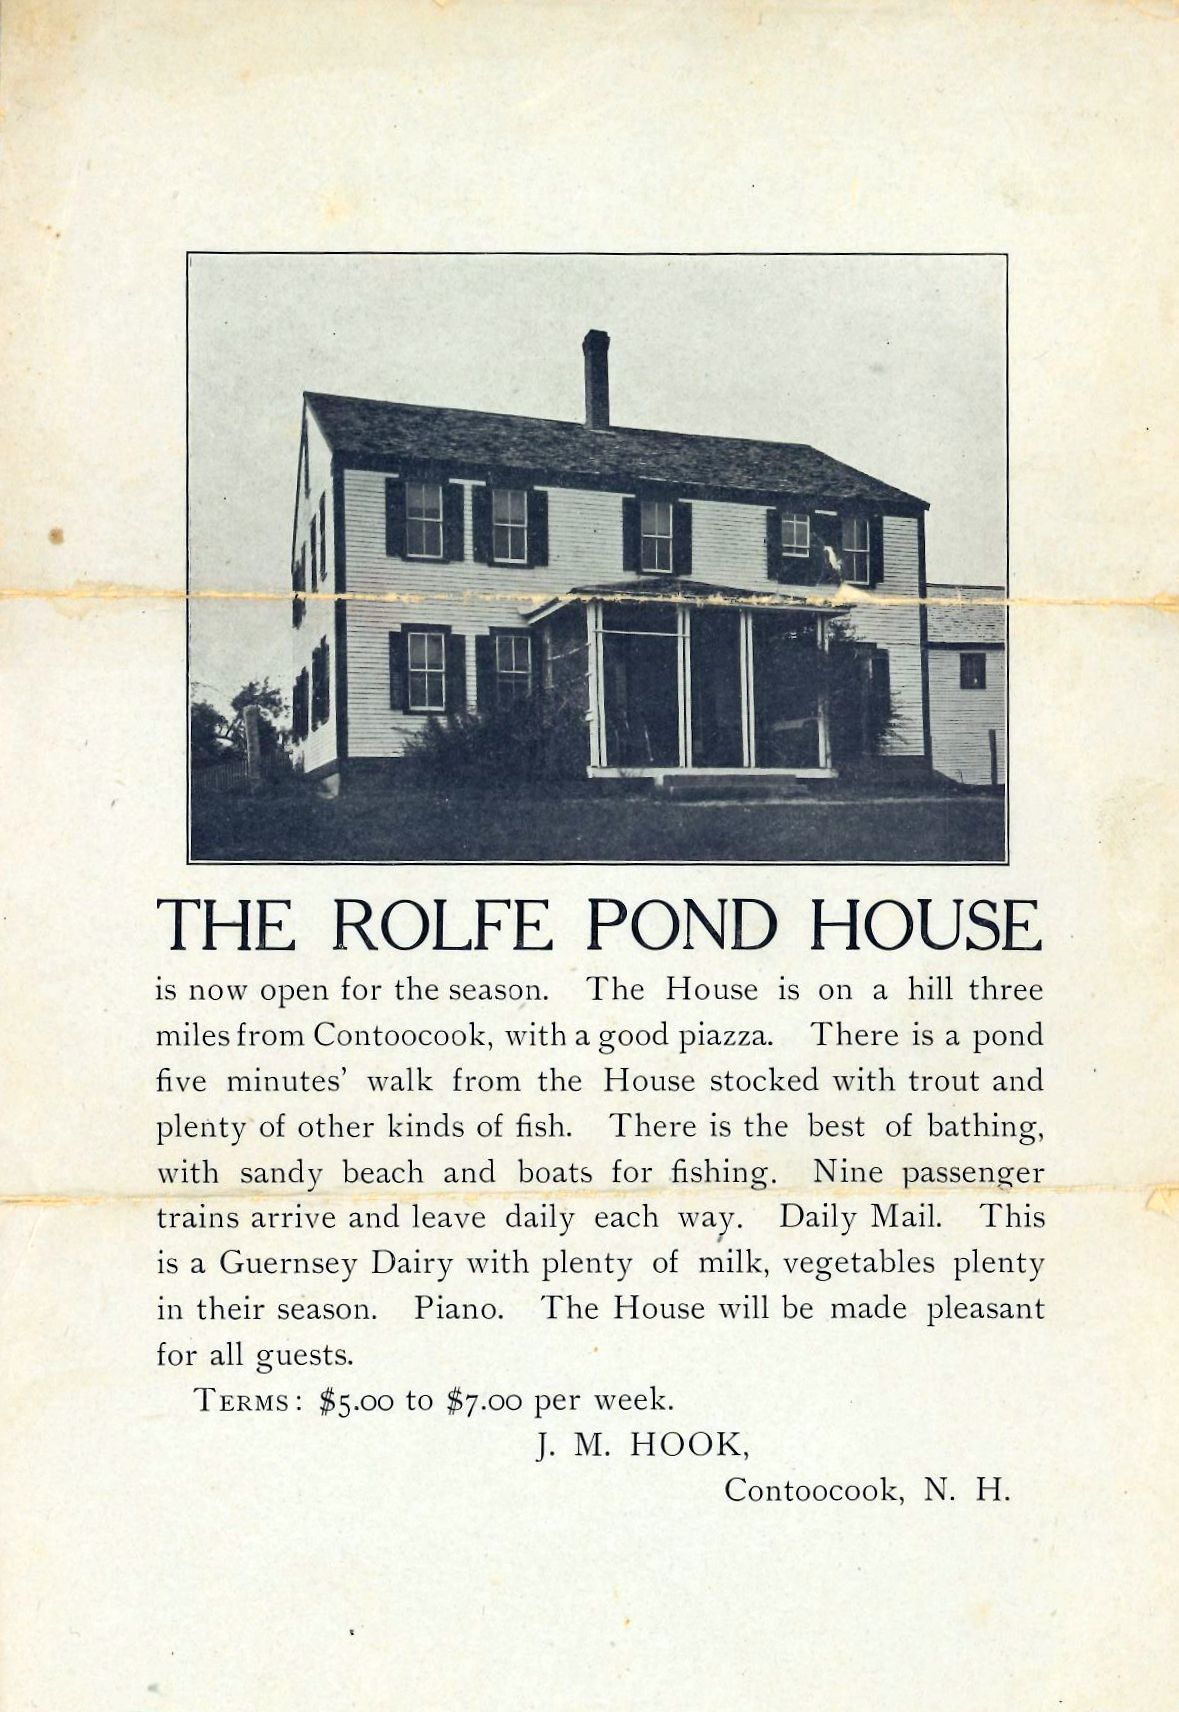 Advertising flyer for The Rolfe Pond House of Hopkinton, N.H.